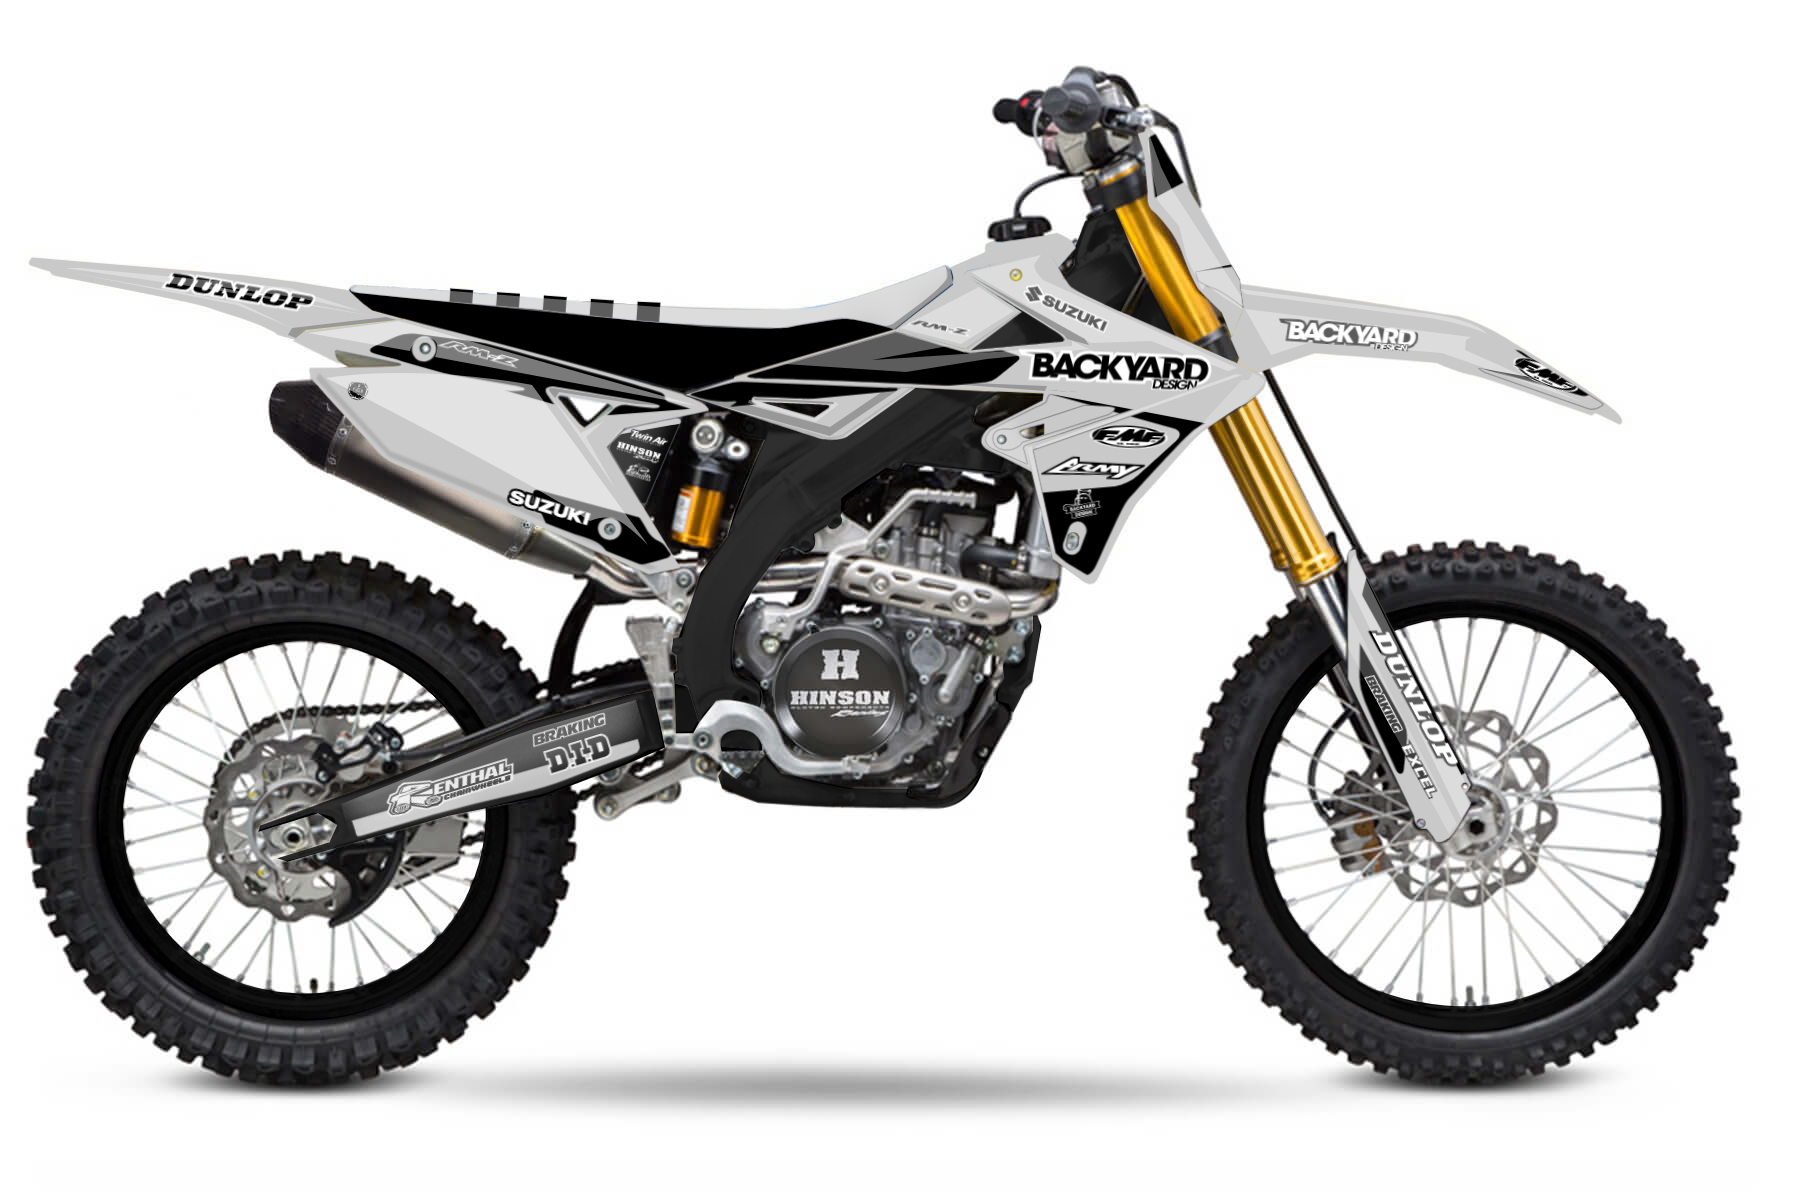 Suzuki RMZ 450 MX Graphic Kits  The Suzuki RMZ 450 combines power, strength and good controls. The bike provides you with everything you need to dominate the offroad tracks.